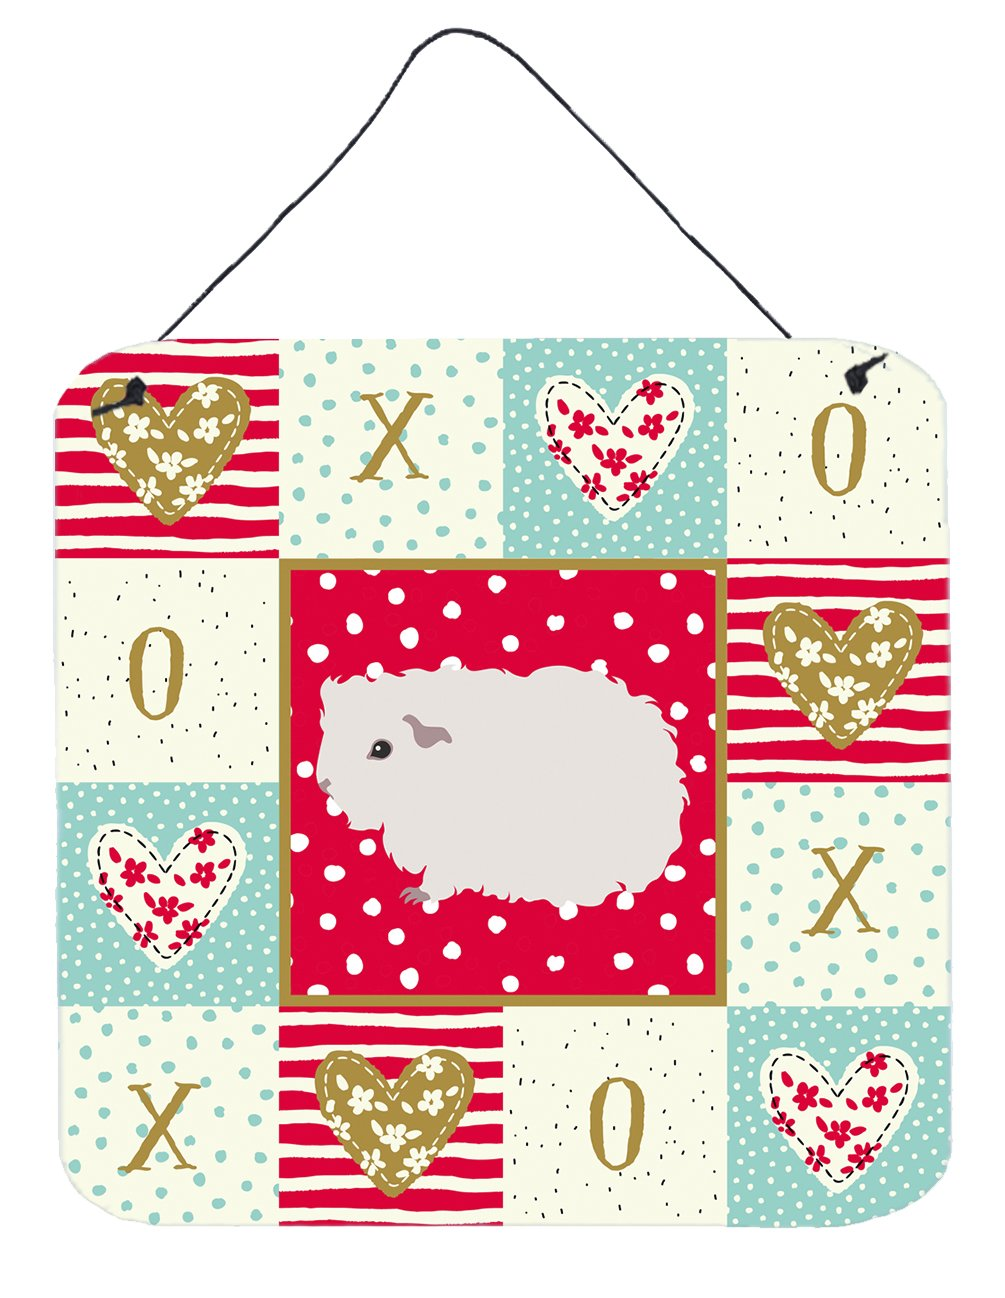 Merino Guinea Pig Love Wall or Door Hanging Prints CK5430DS66 by Caroline's Treasures